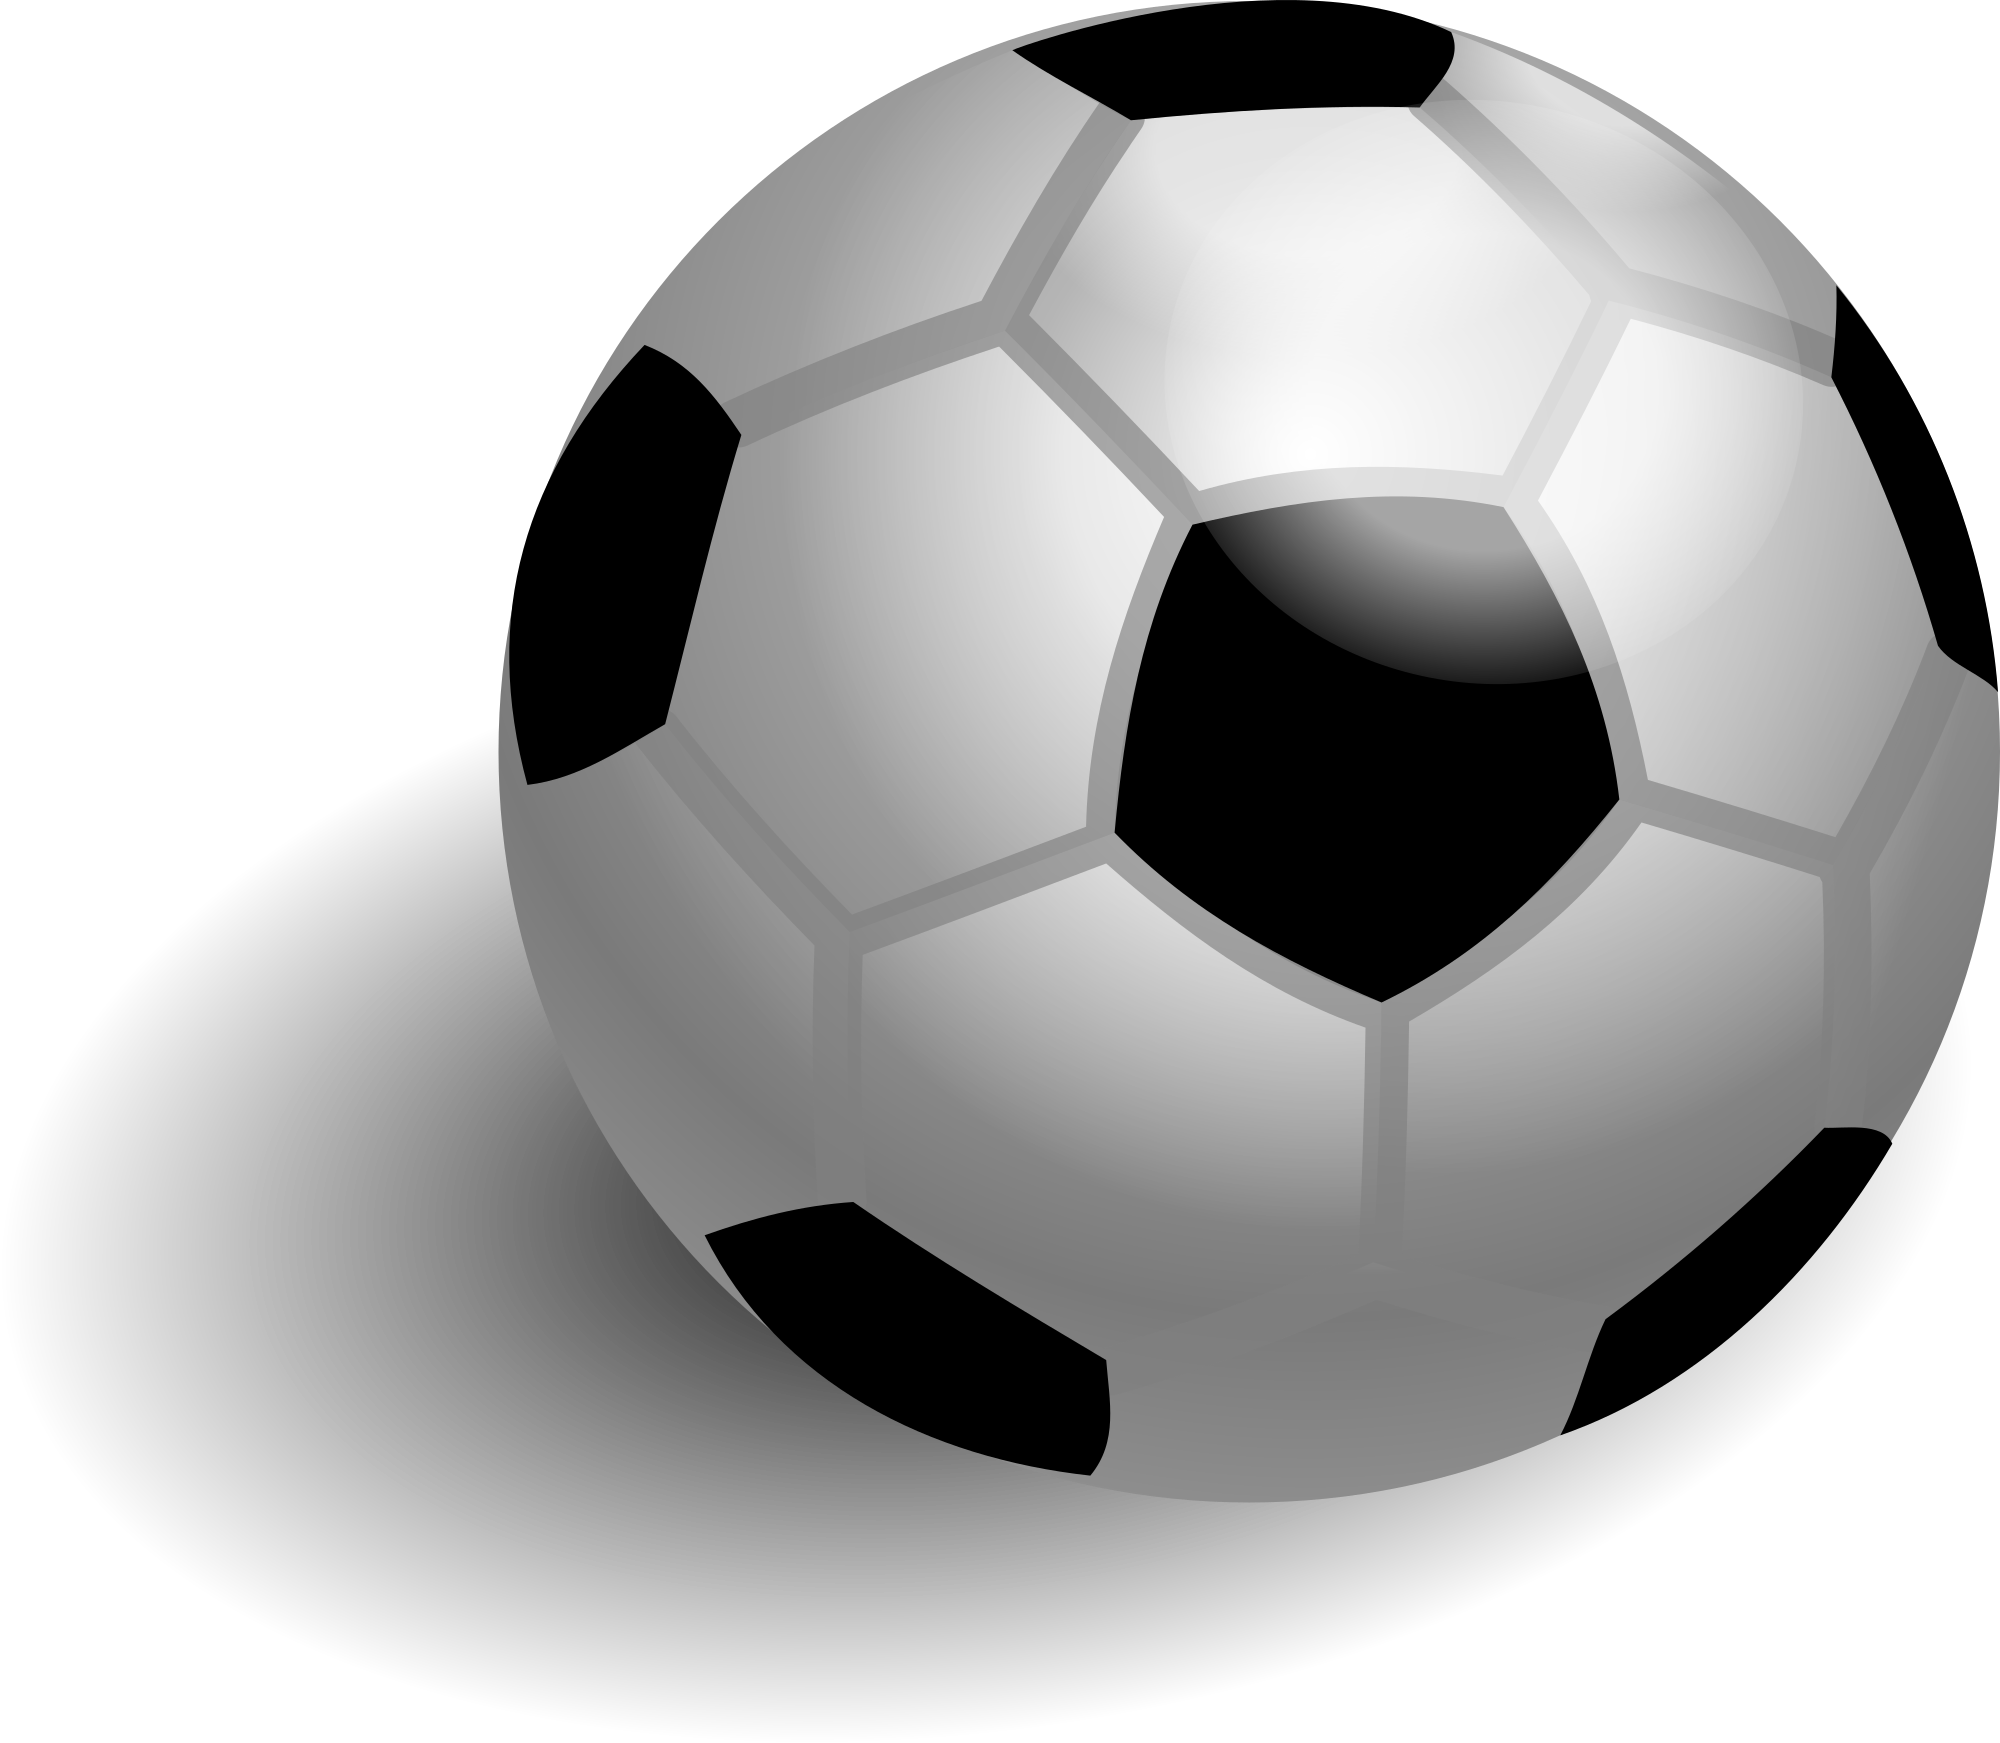 Soccer Clip Art Free Clipart Images 5, Free Soccer Free Clipart.